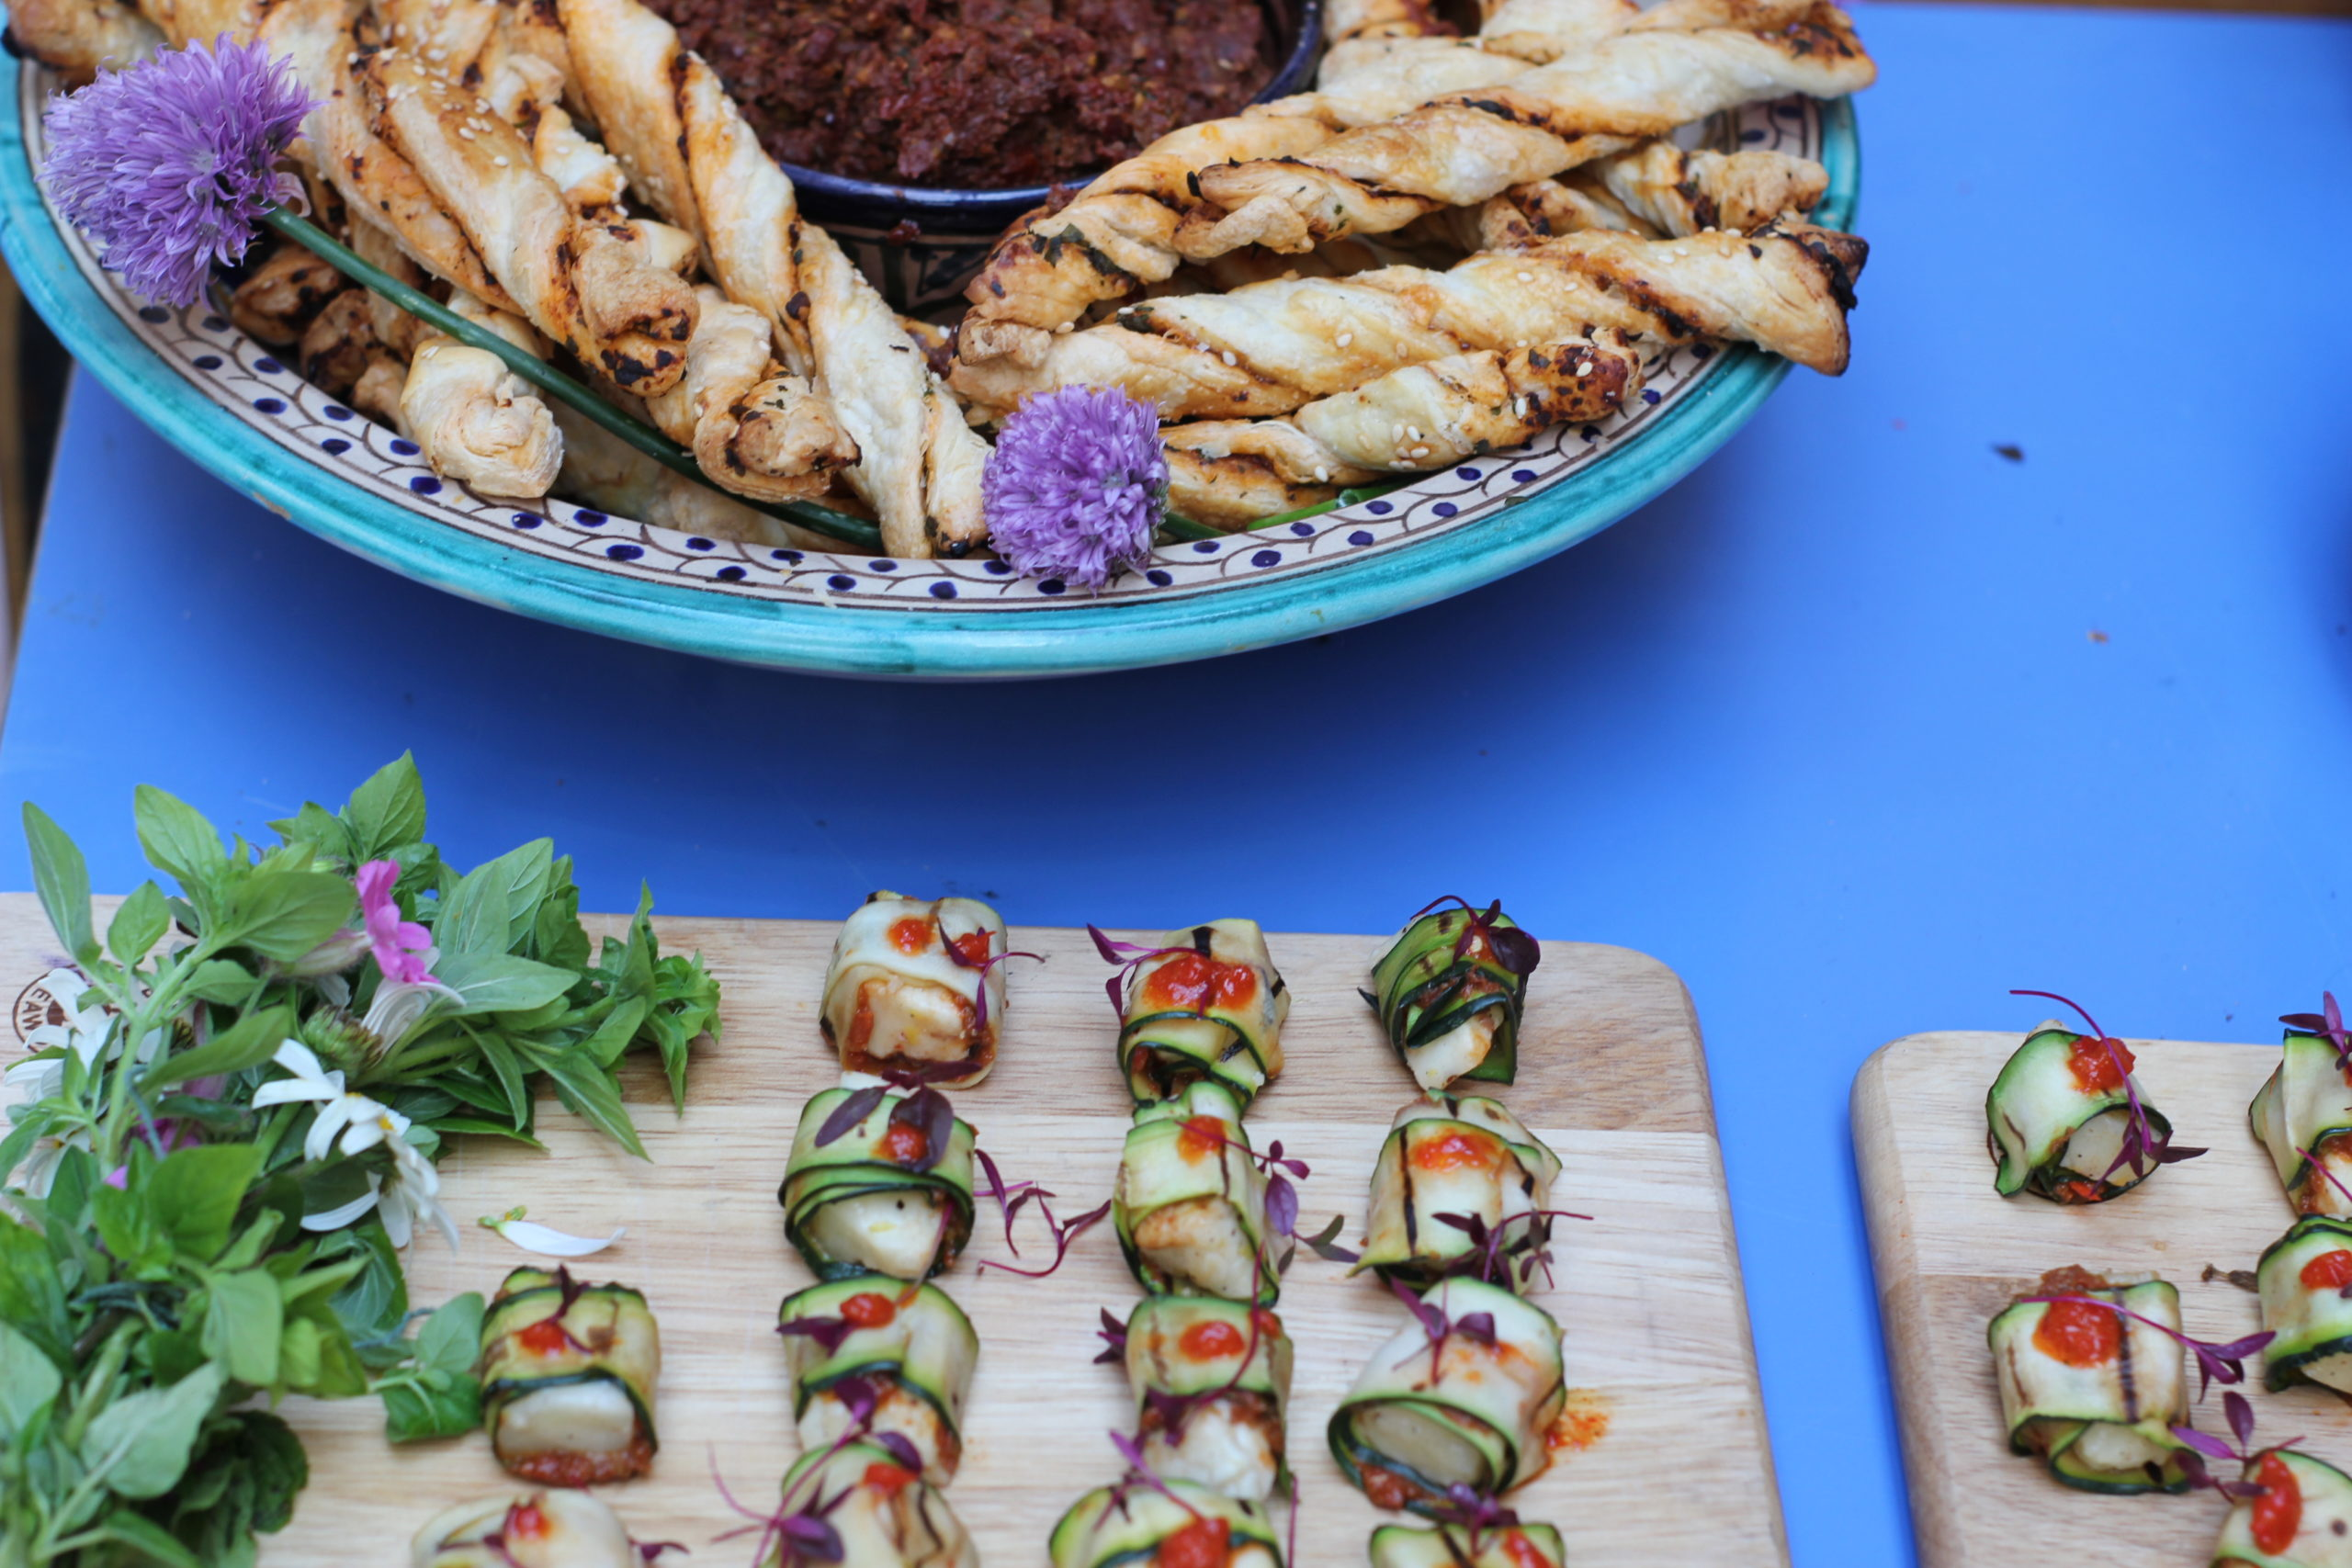 Vegan and vegetarian wedding catering food platters